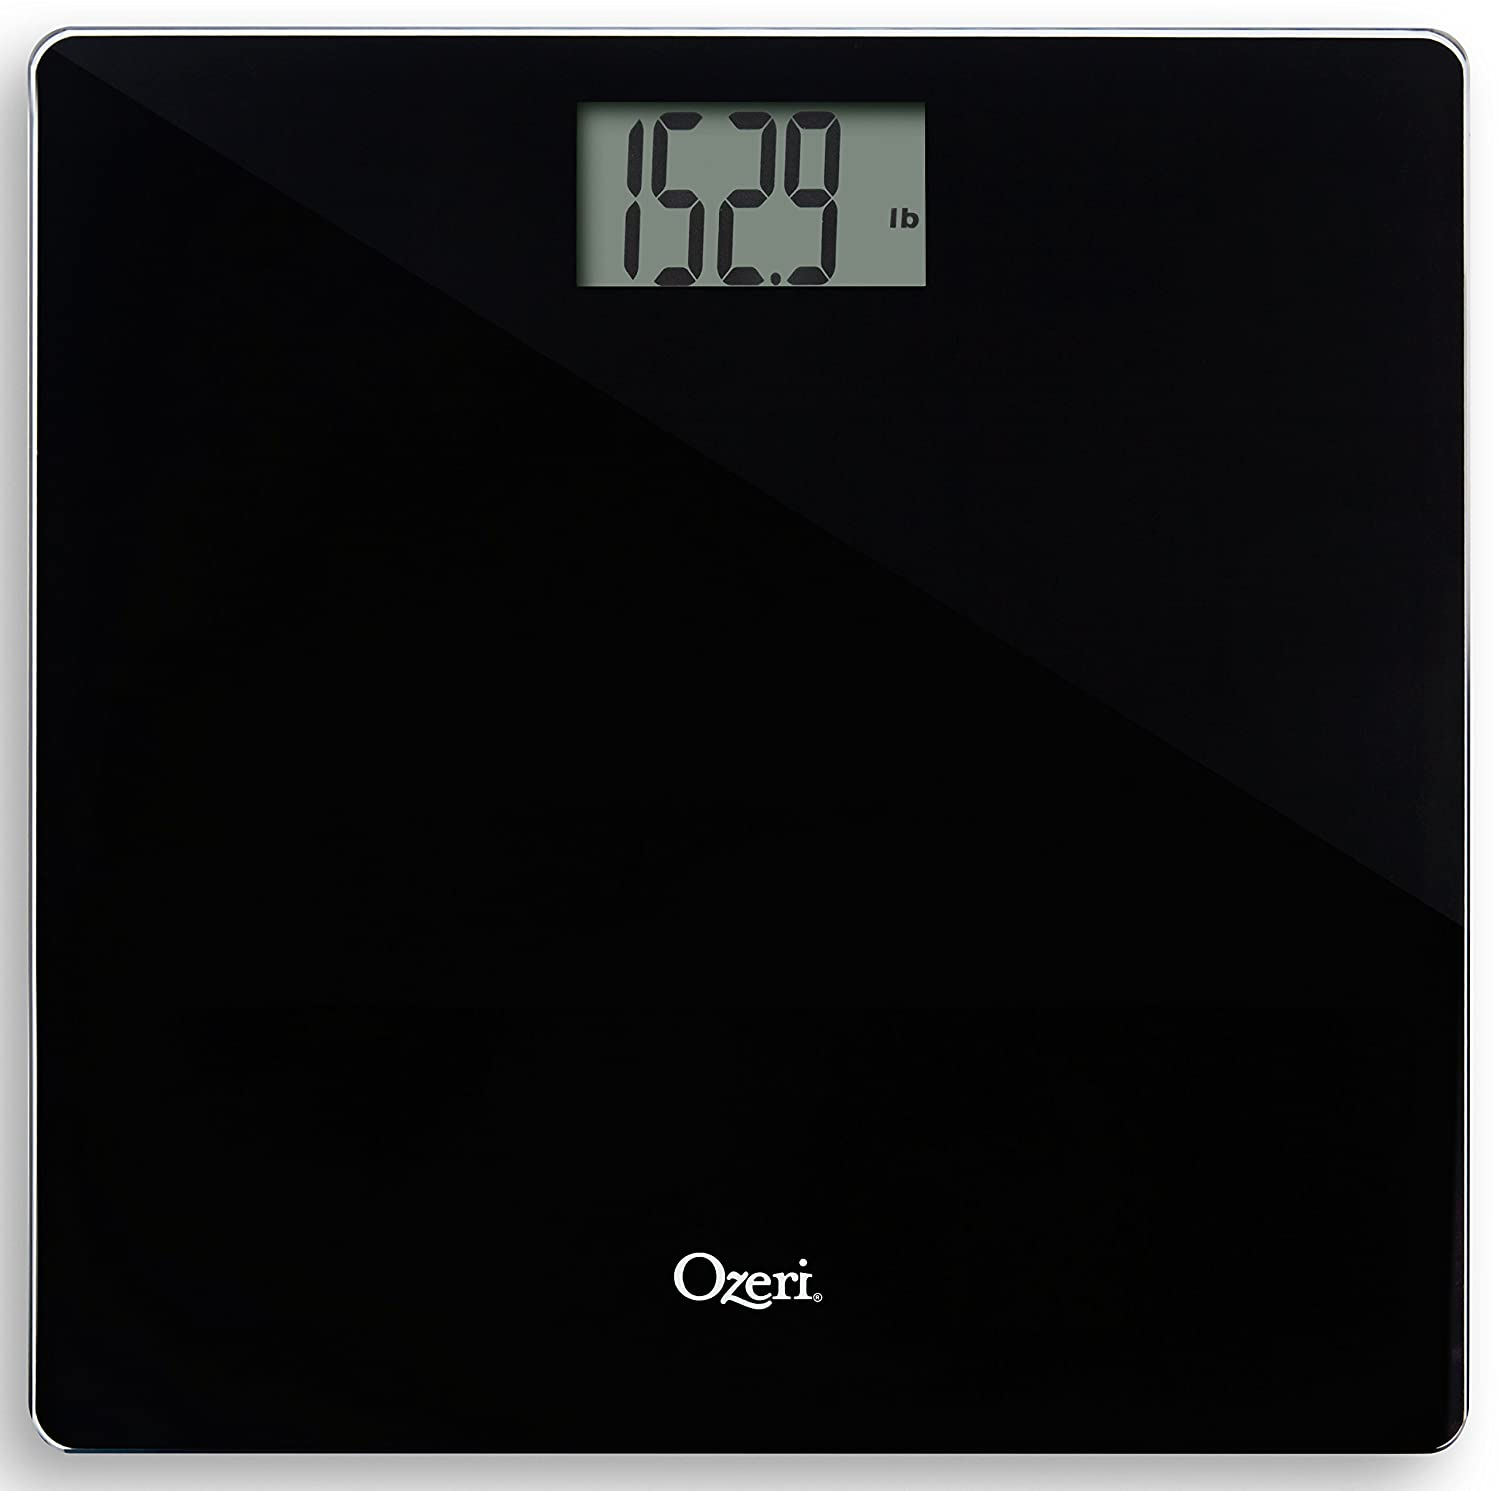 Ozeri Precision Bath Scale (440 lbs / 200 kg) in Tempered Glass, with 50 Gram Sensor Technology (0.1 lbs / 0.05 kg) and Infant, Pet & Luggage Tare